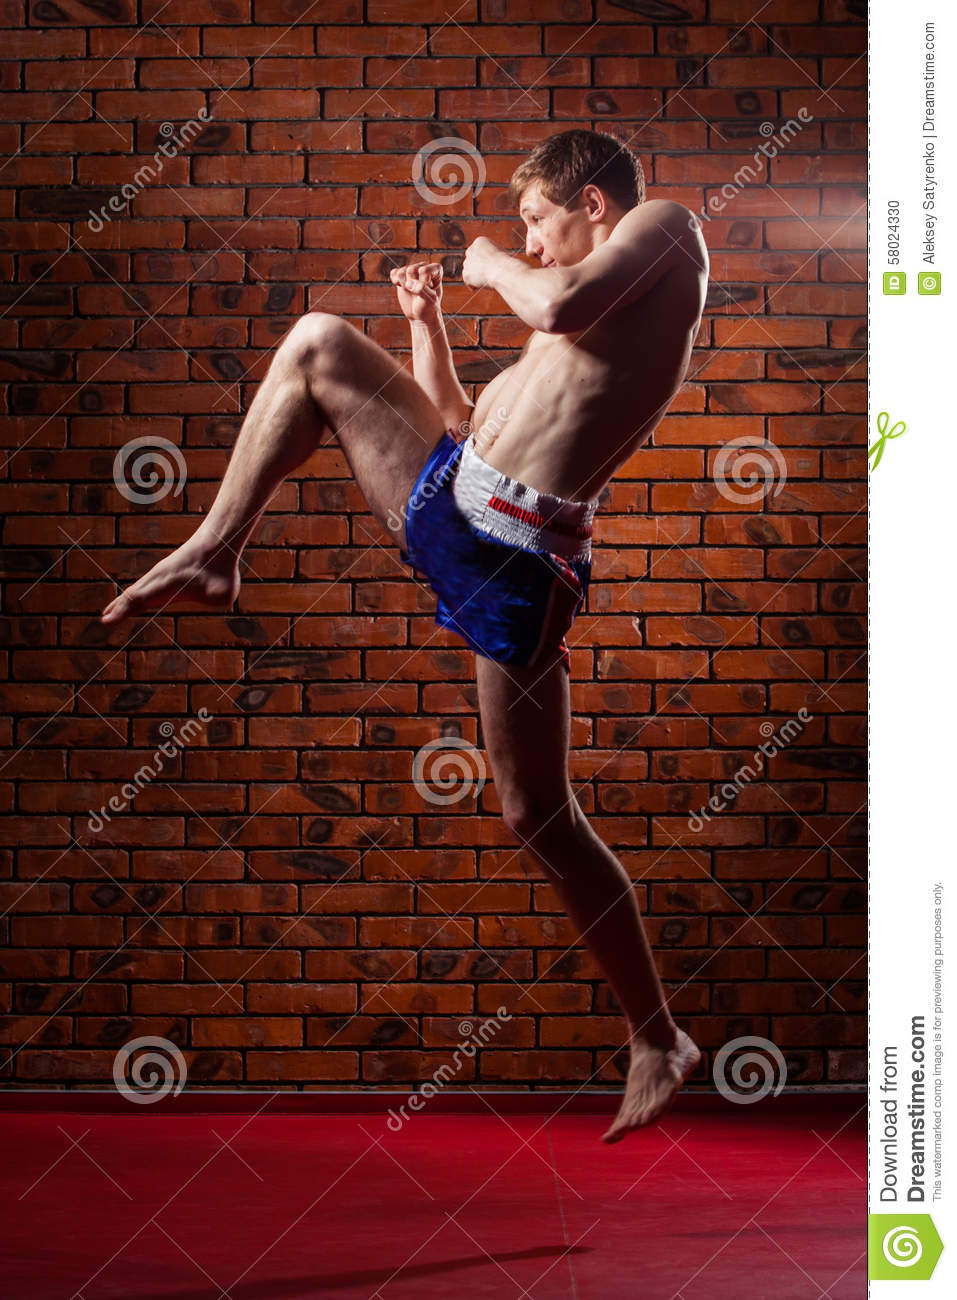 Muscular handsome fighter giving a forceful